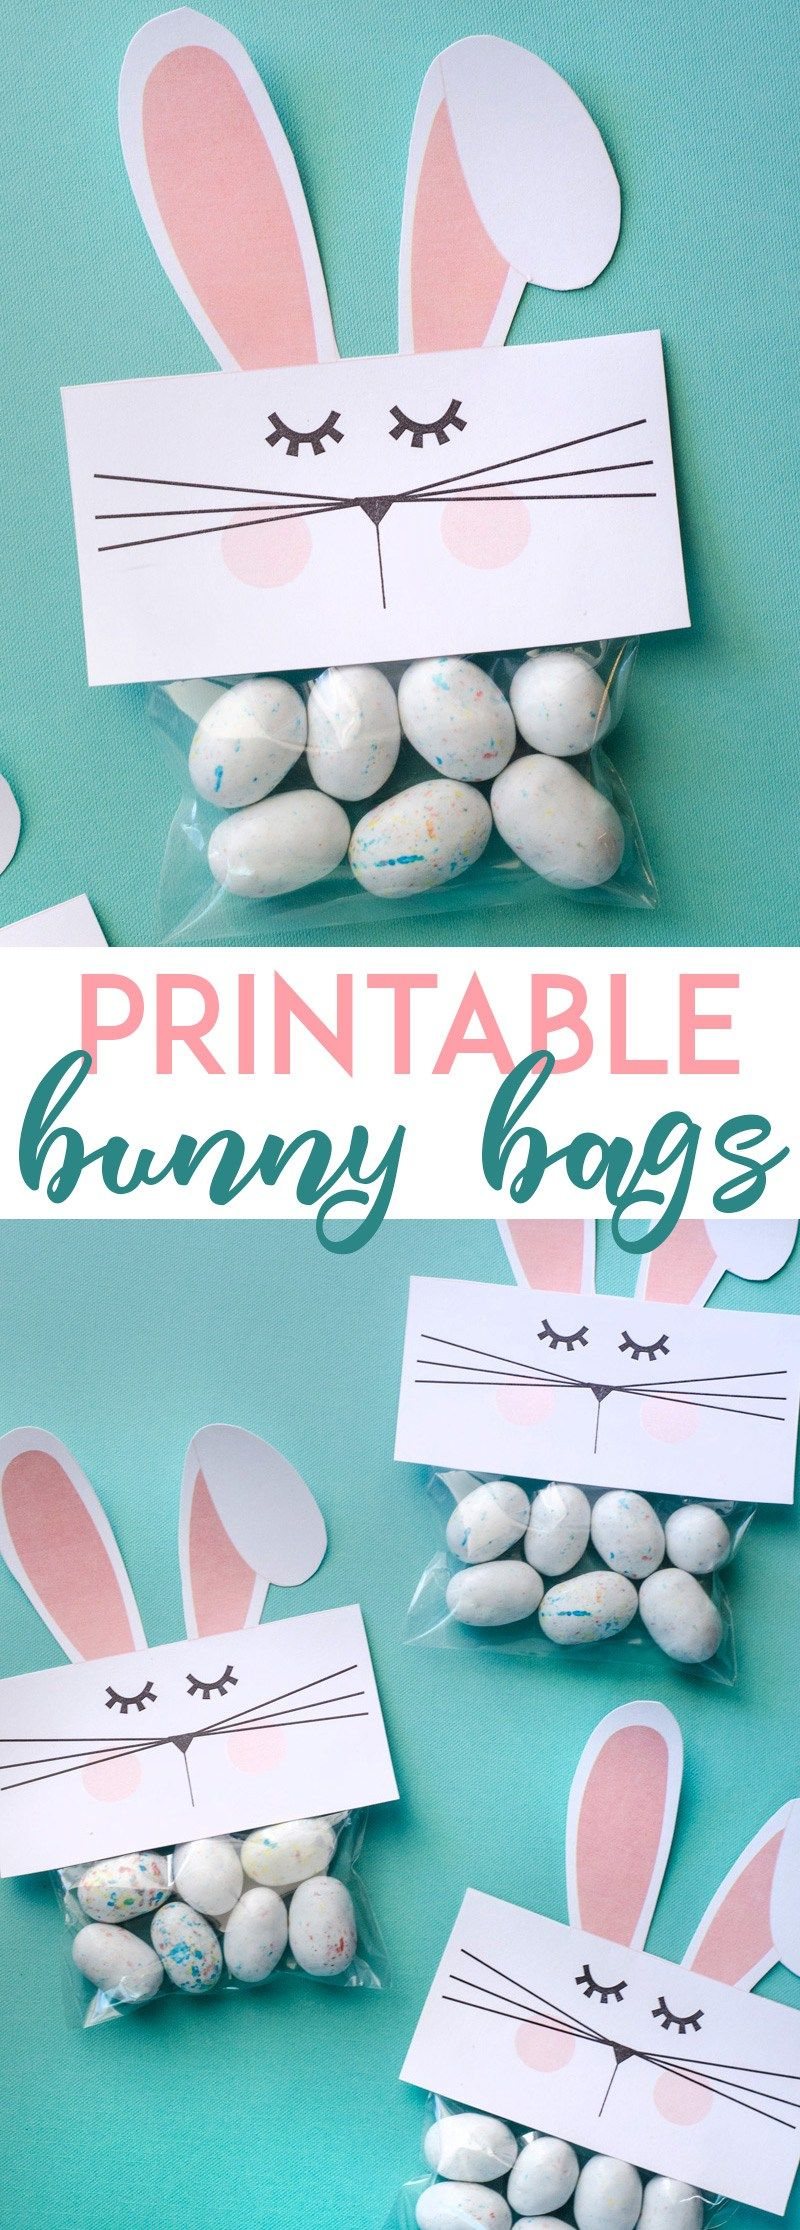 Free PRINTABLE Bunny Bags by Lindi Haws of Love The Day